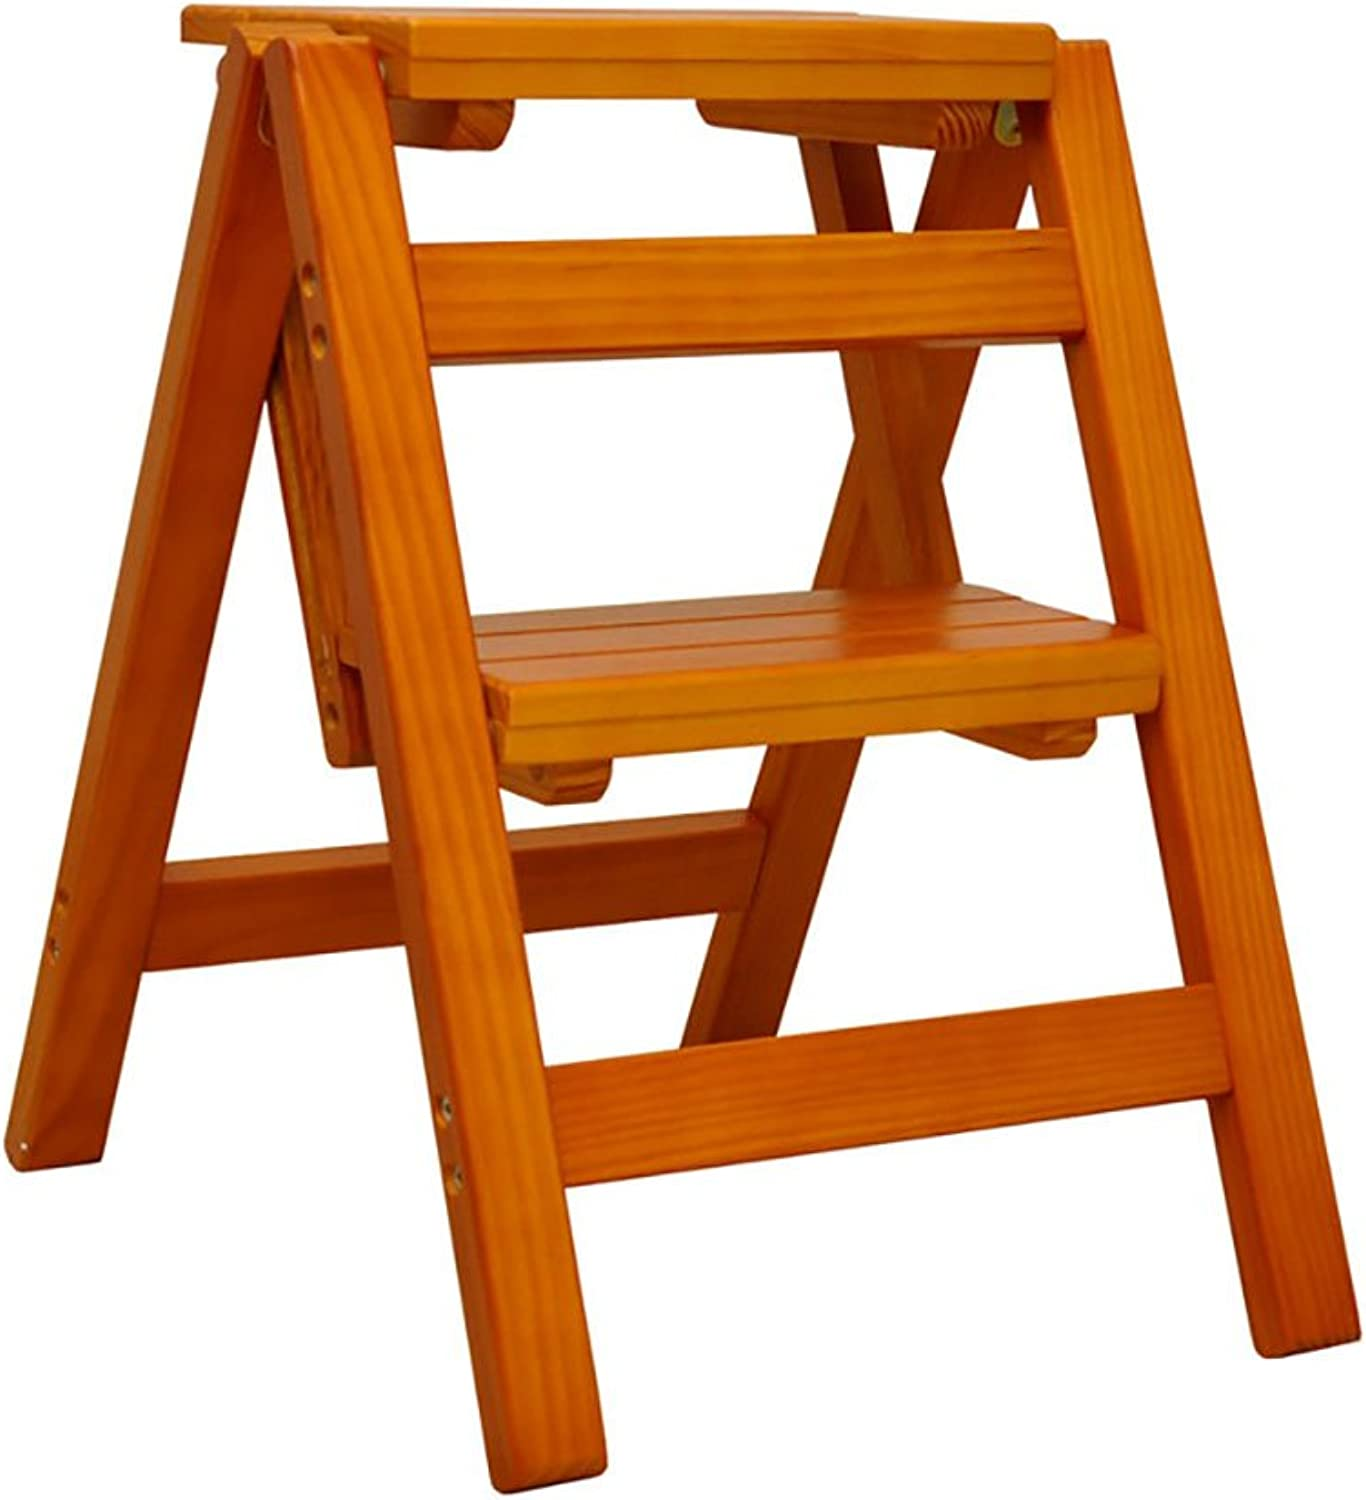 AIDELAI Bar Stool Chair- Multifunctional Solid Wood Bench Step Folding Two Step Ladder Small Wooden Ladder Portable Ladder Rack (color   A)